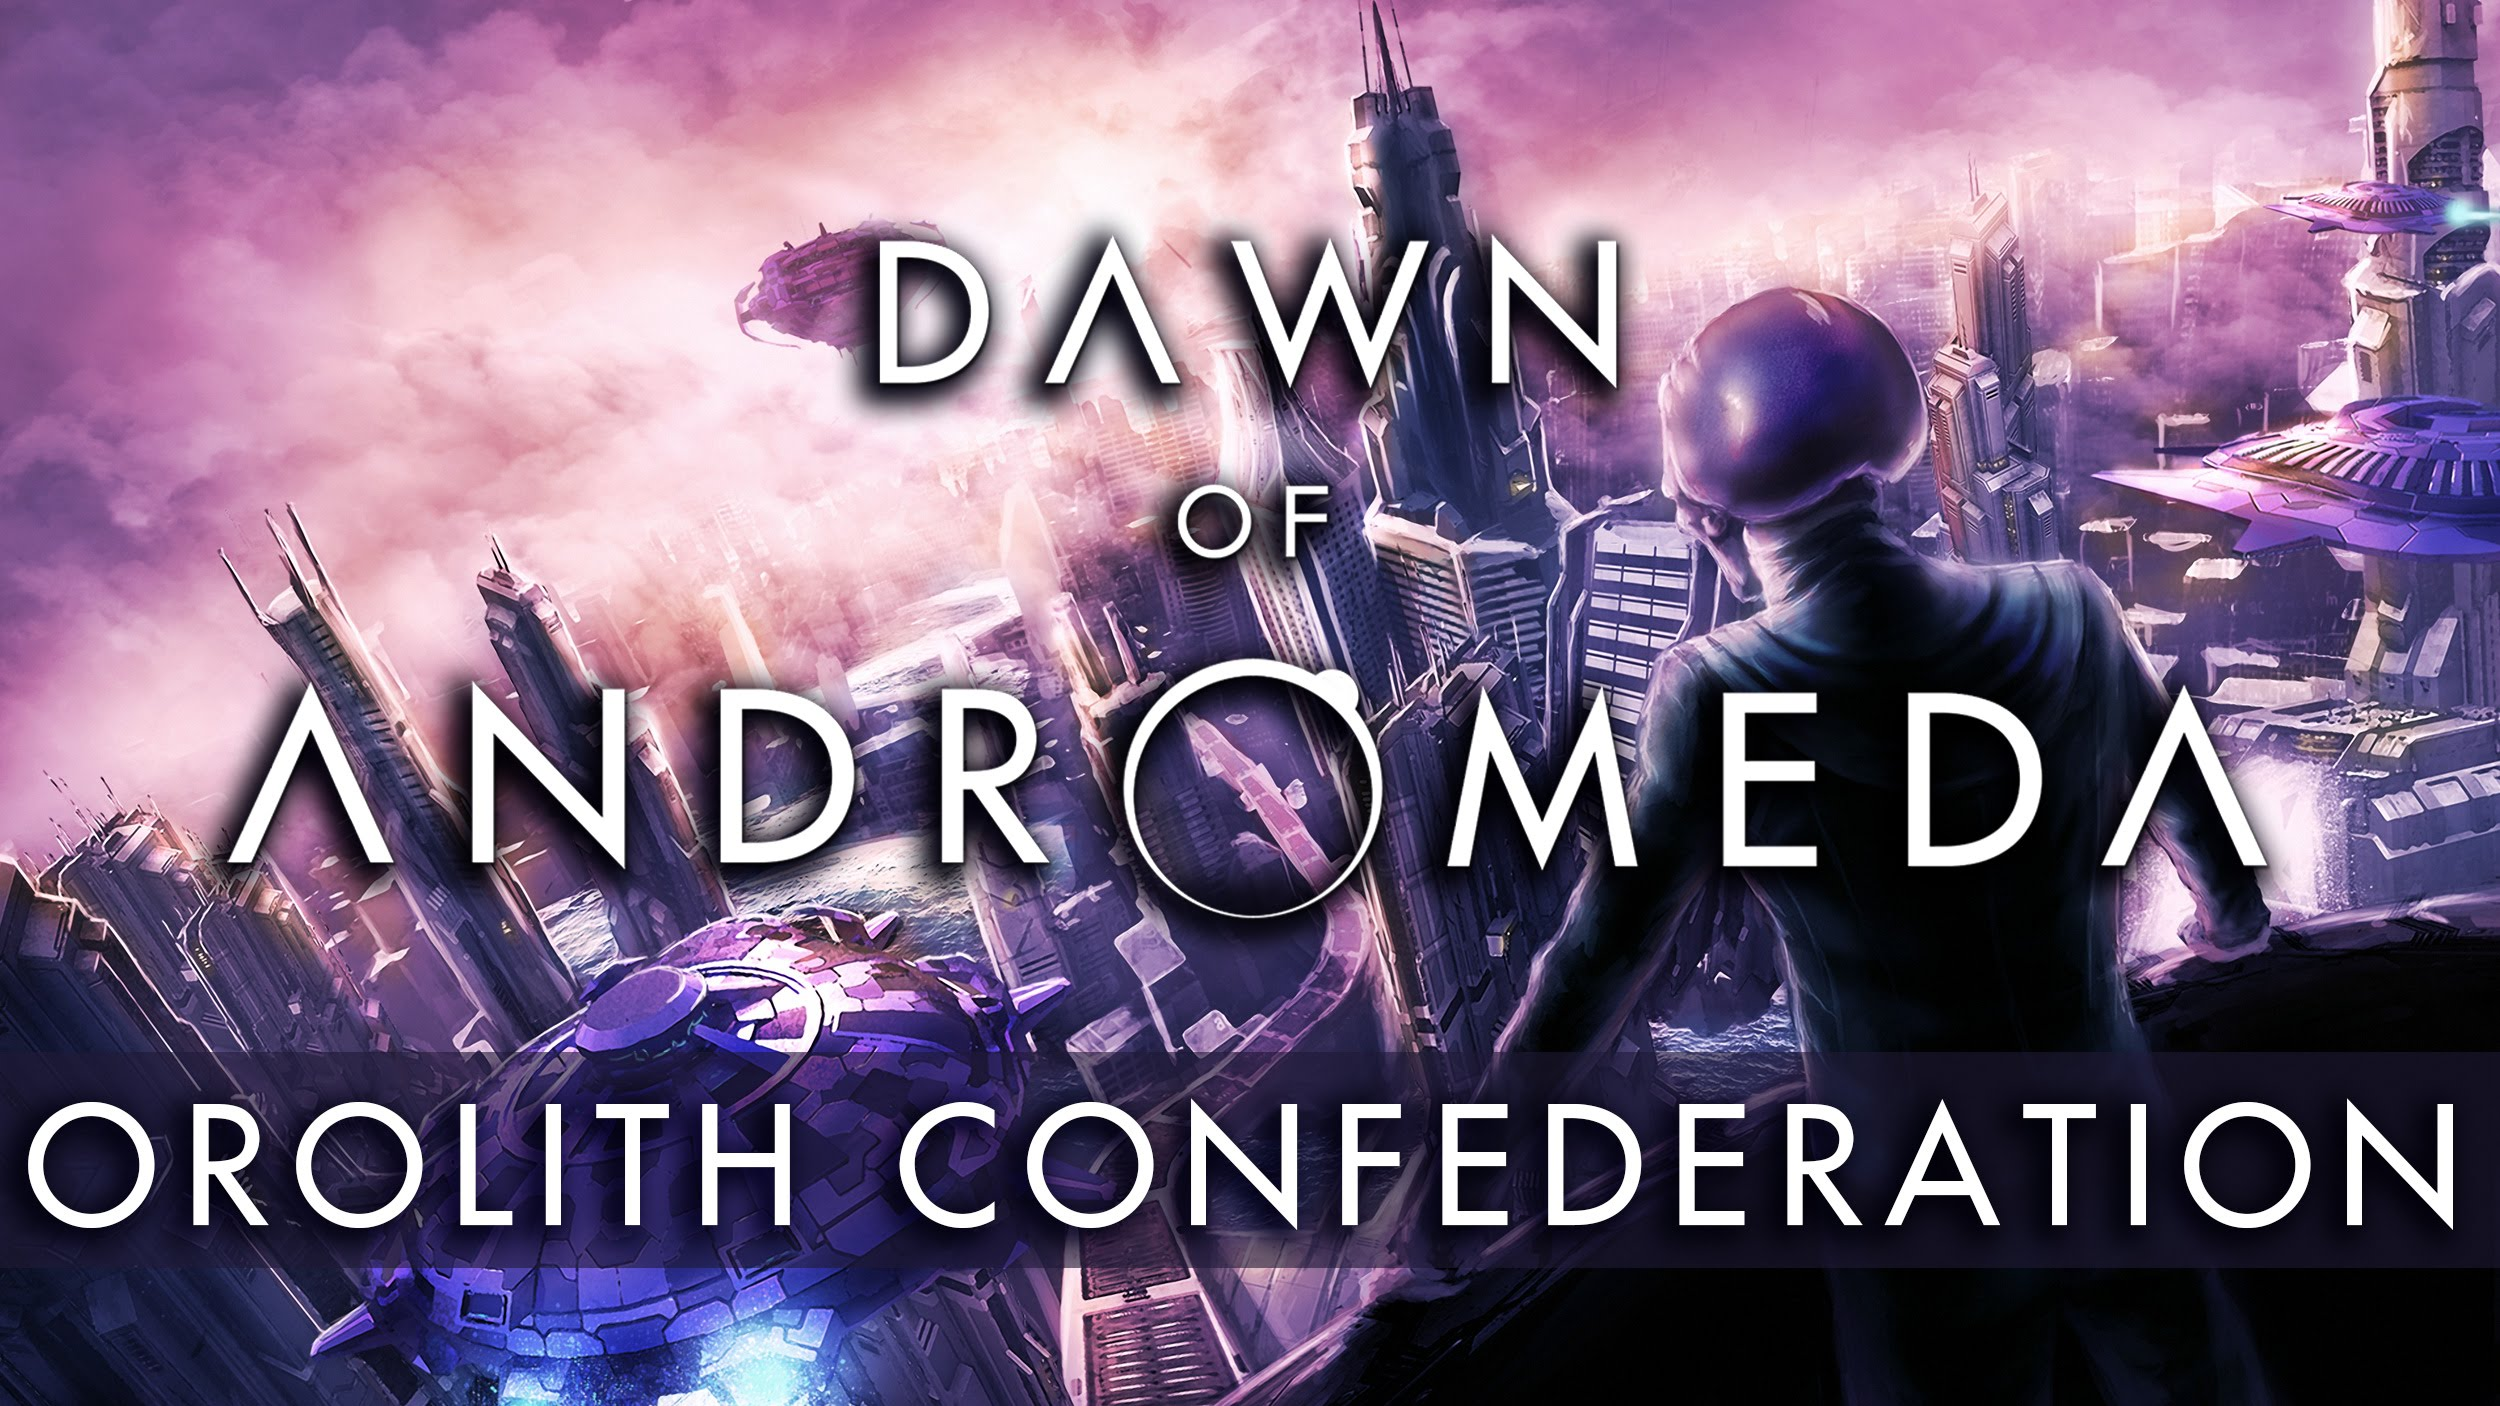 Dawn of Andromeda - The Races: Orolith Confederation